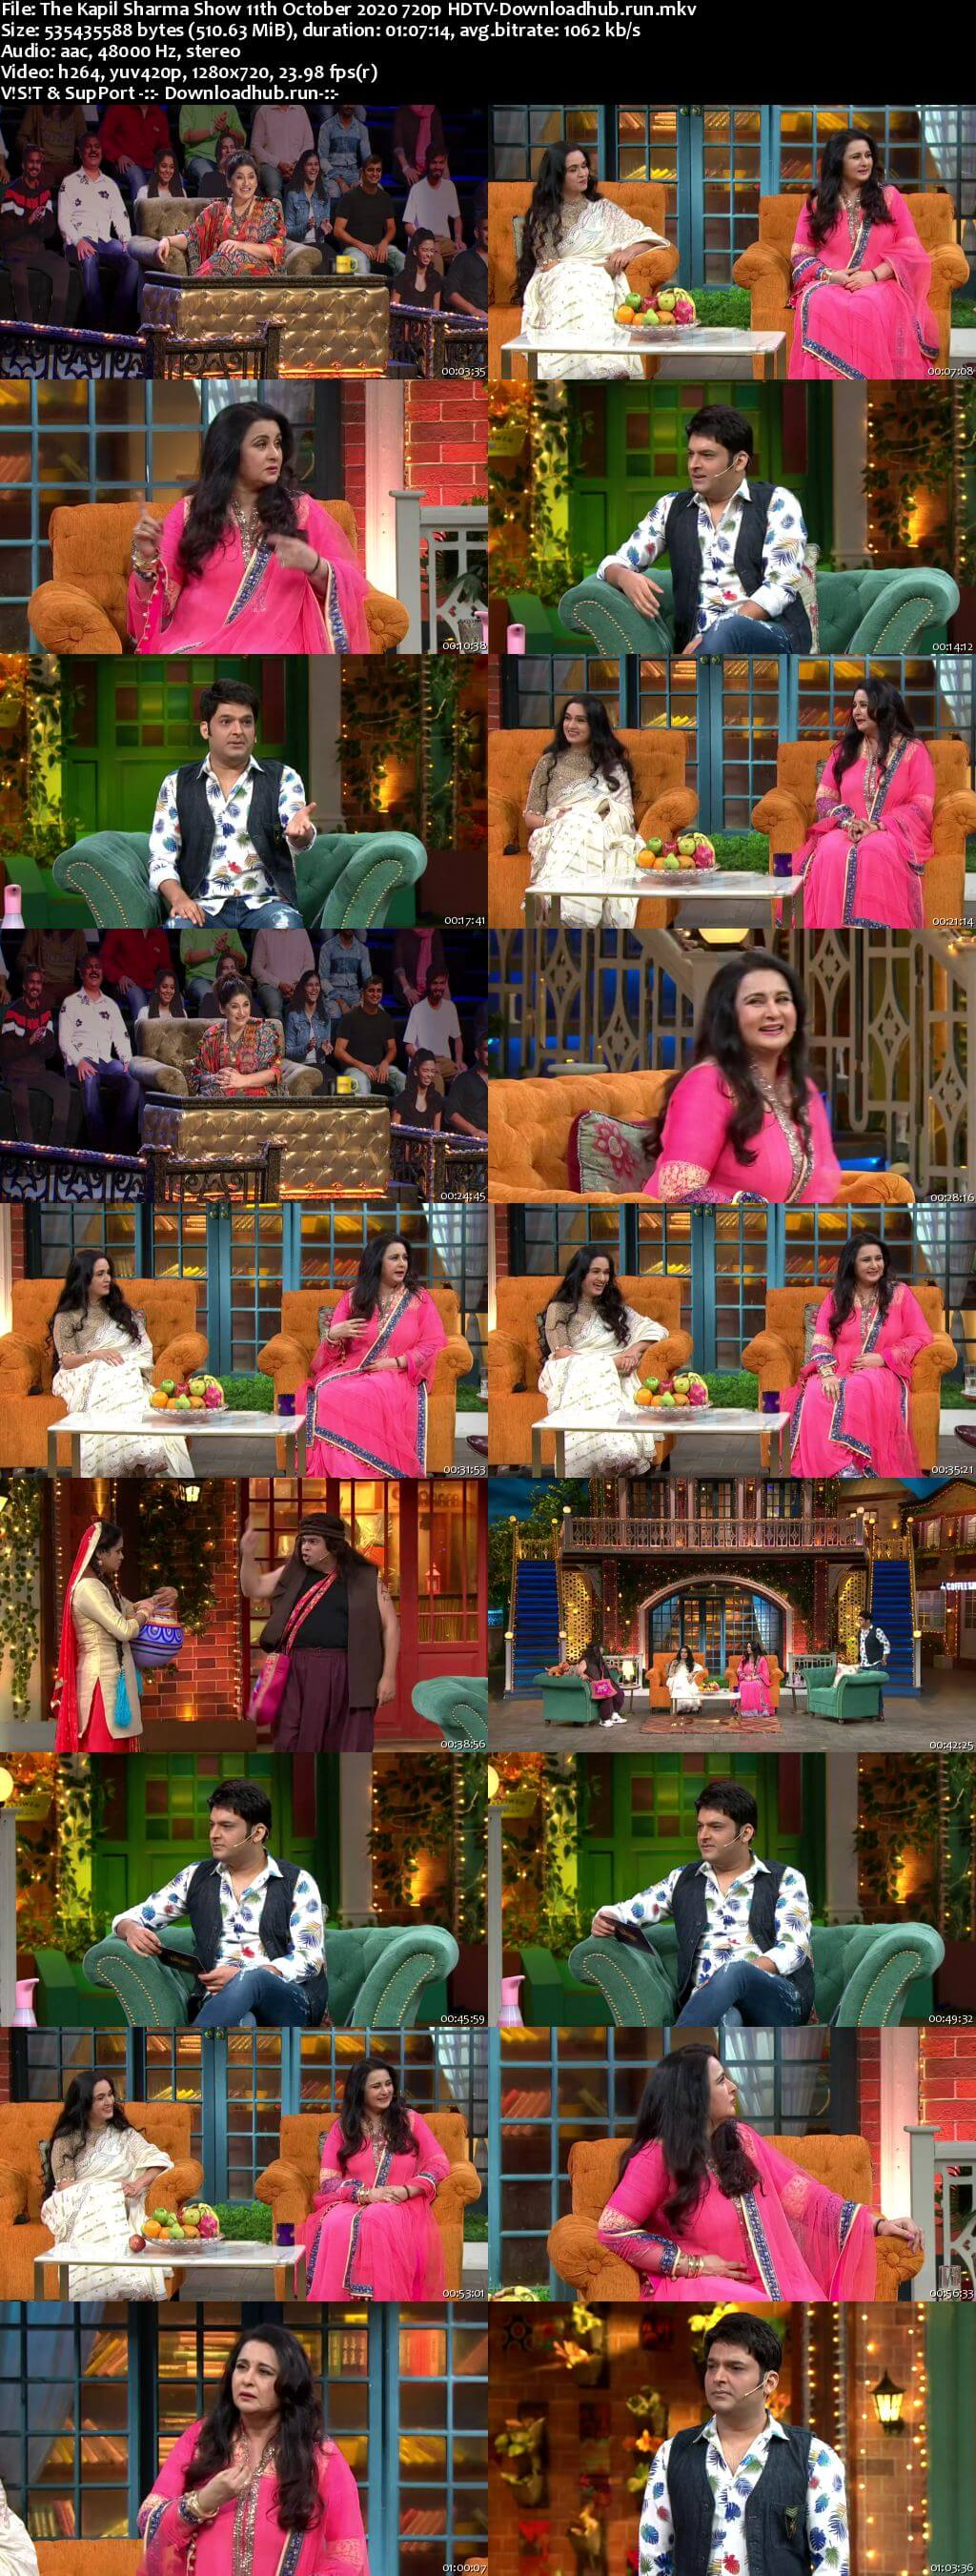 The Kapil Sharma Show 11 October 2020 Episode 149 HDTV 720p 480p